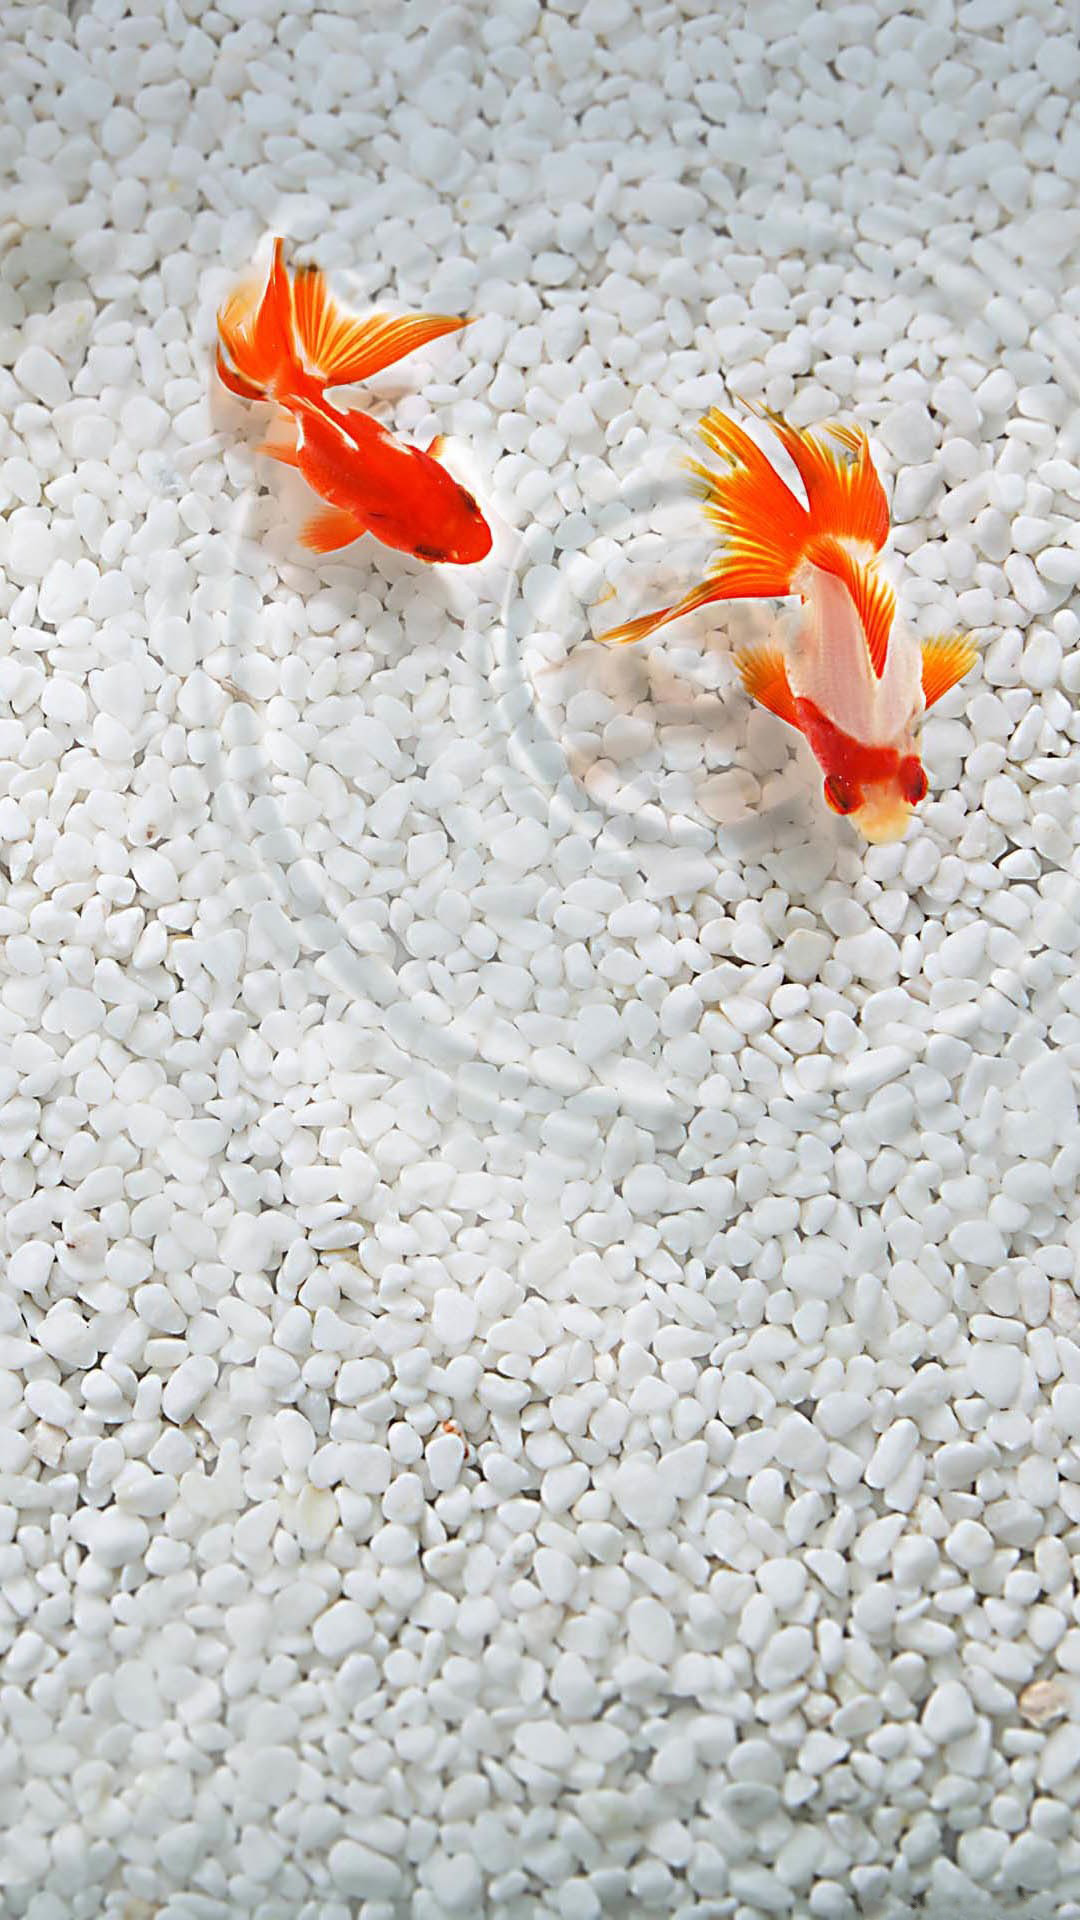 1080x1920 Orange Coy Fish White Sand Android Wallpaper ...